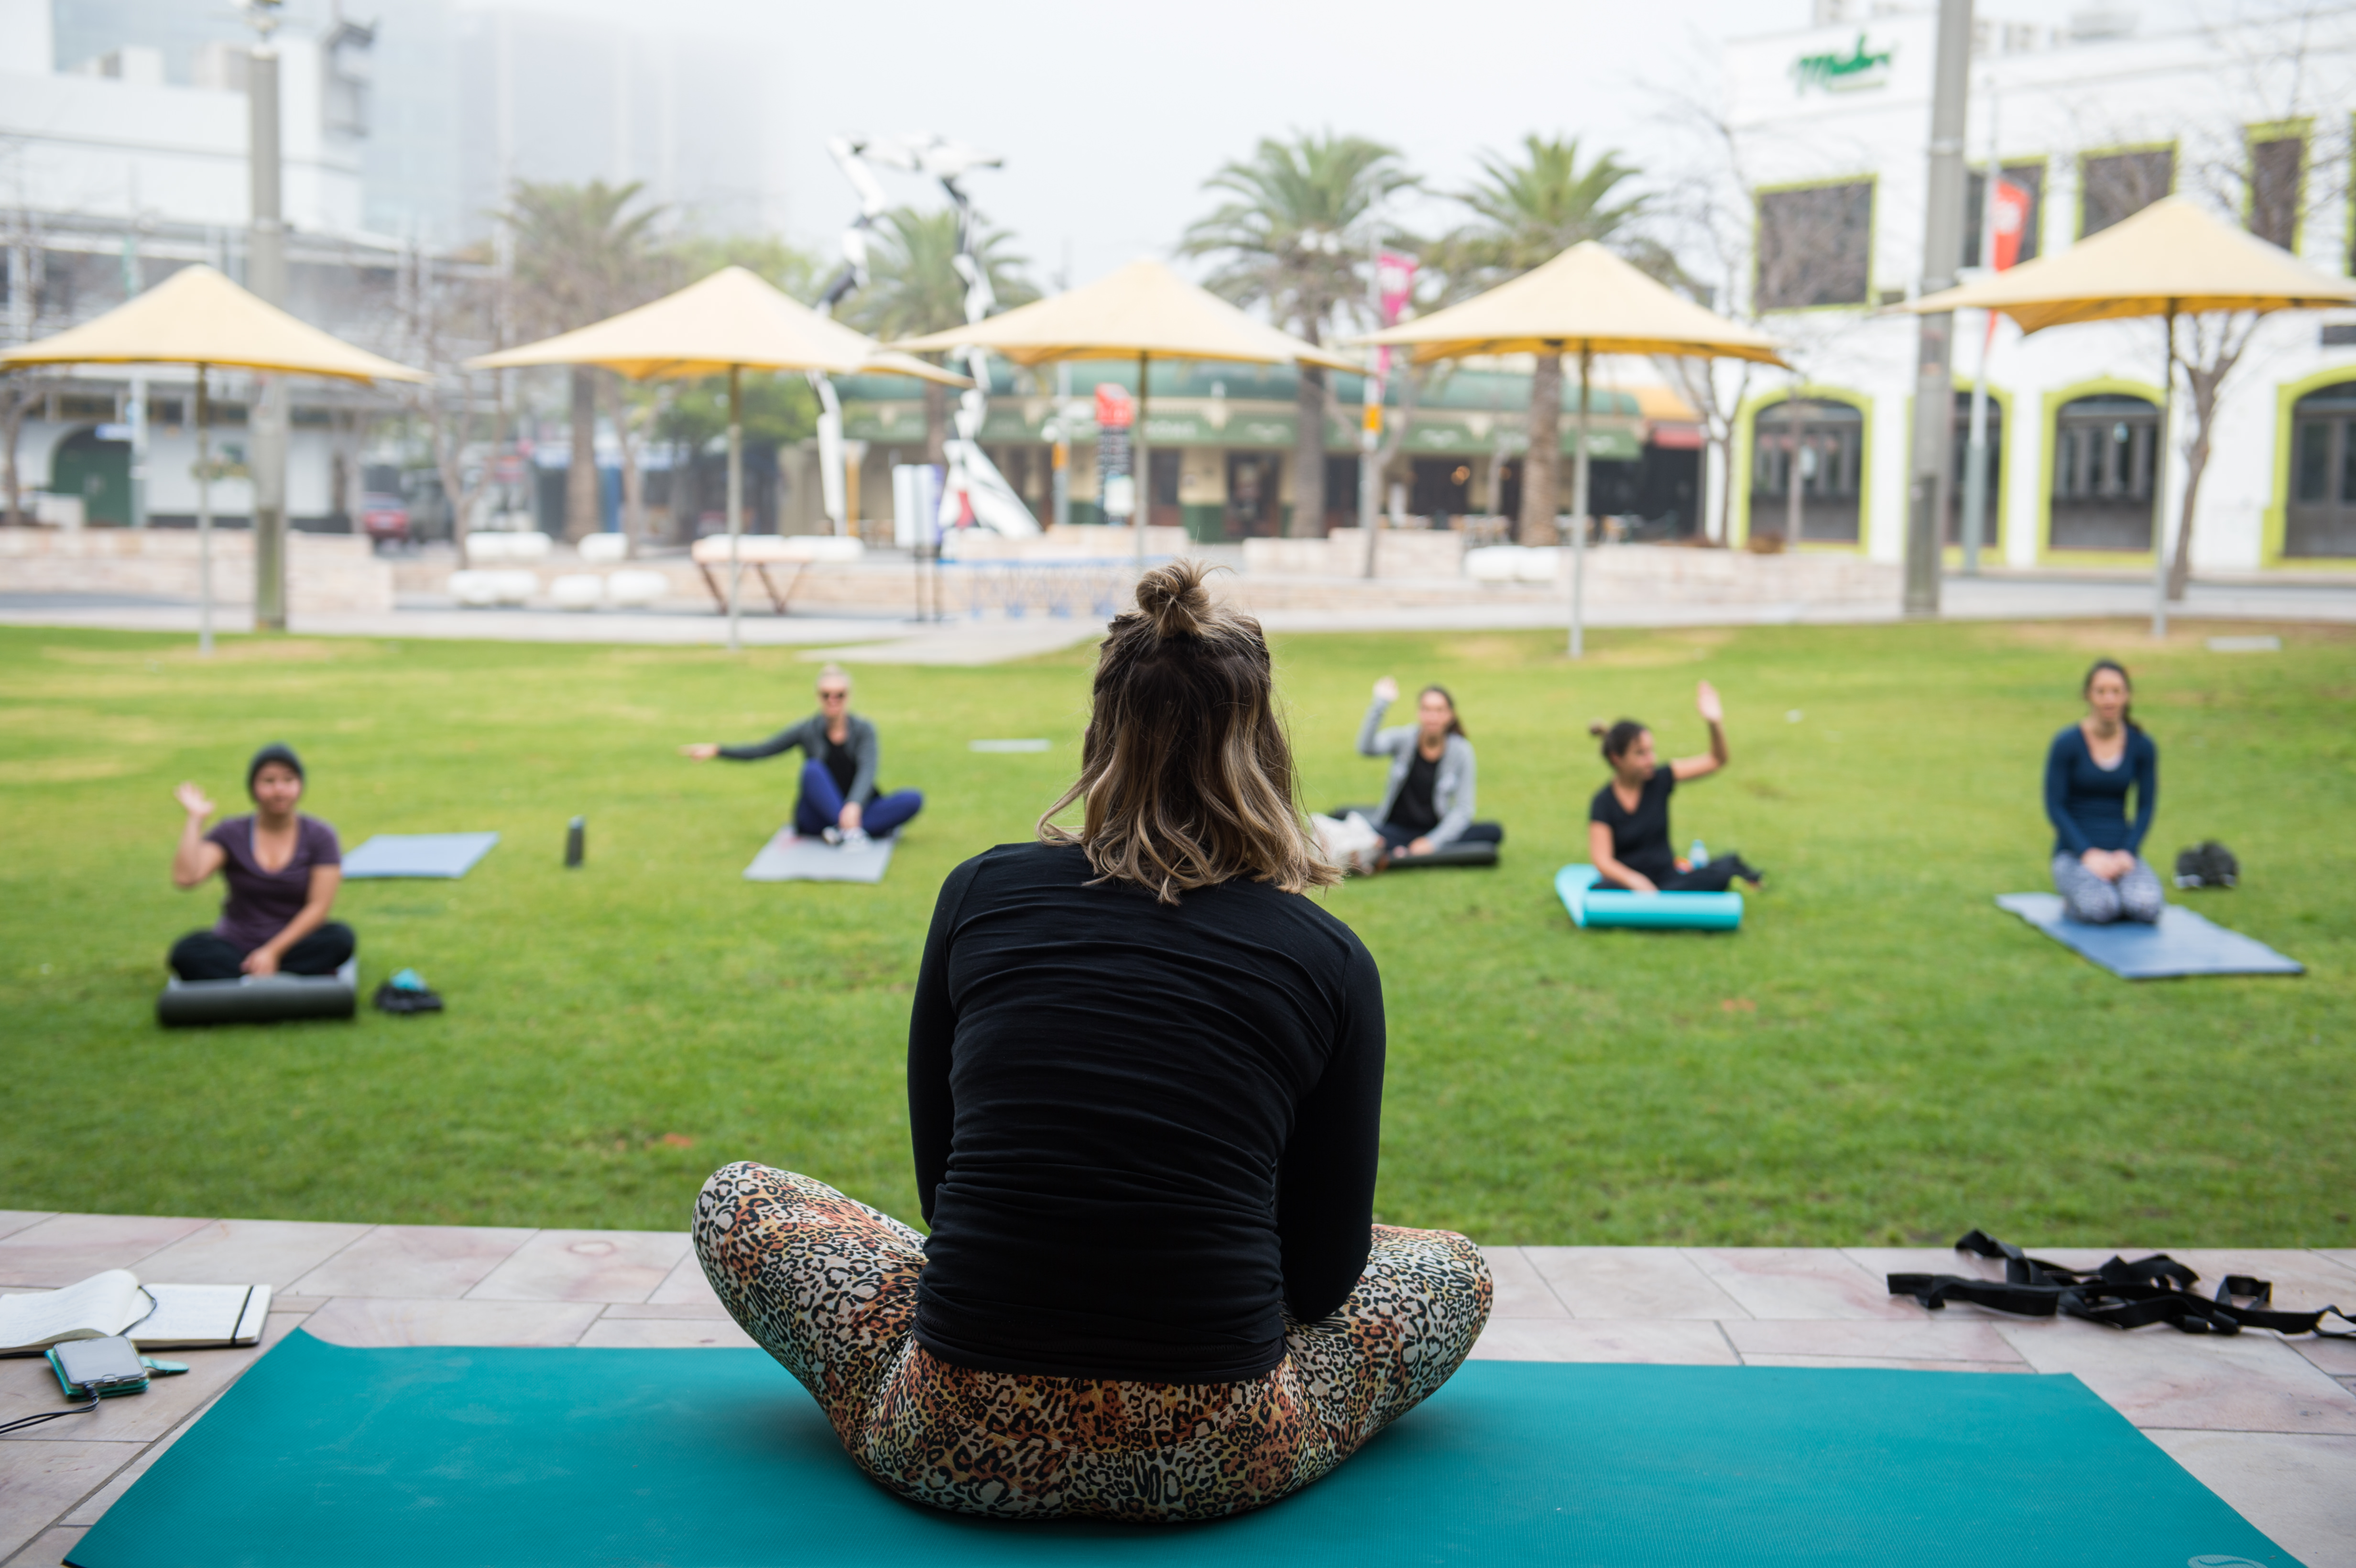 Yoga at the Northbridge Piazza is available during the Australia Day Long Weekend